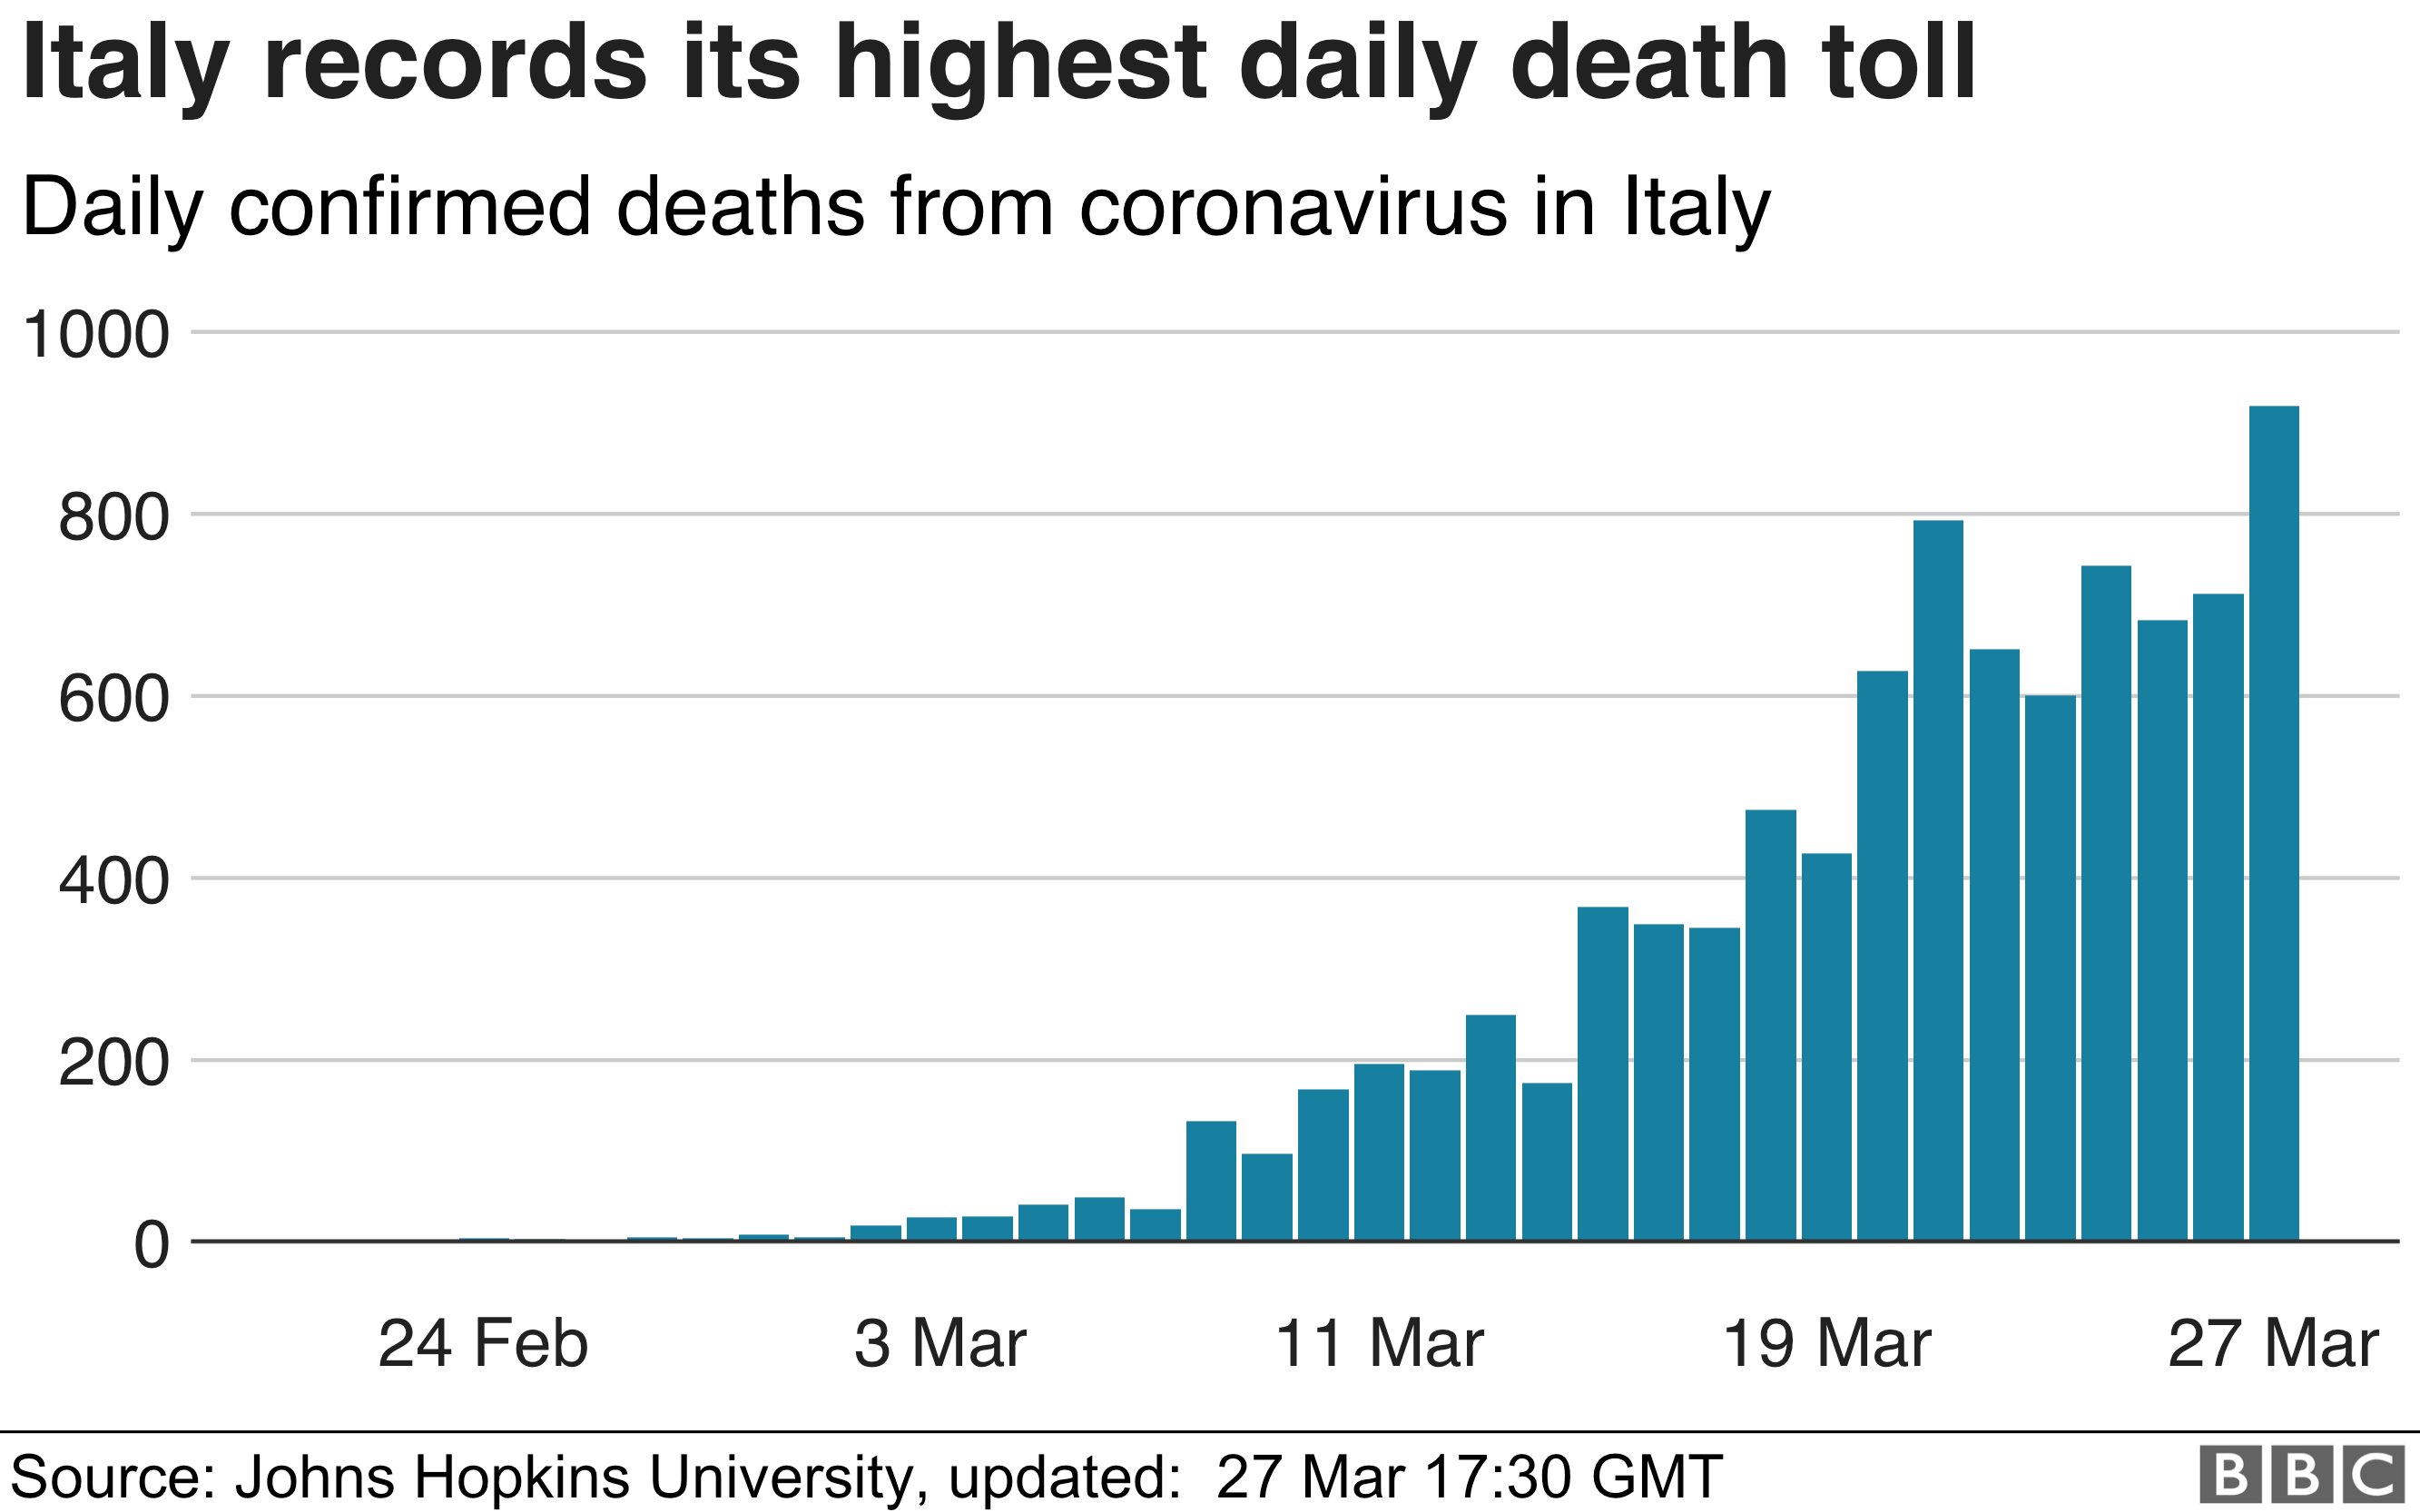 Chart showing Italy's daily death toll